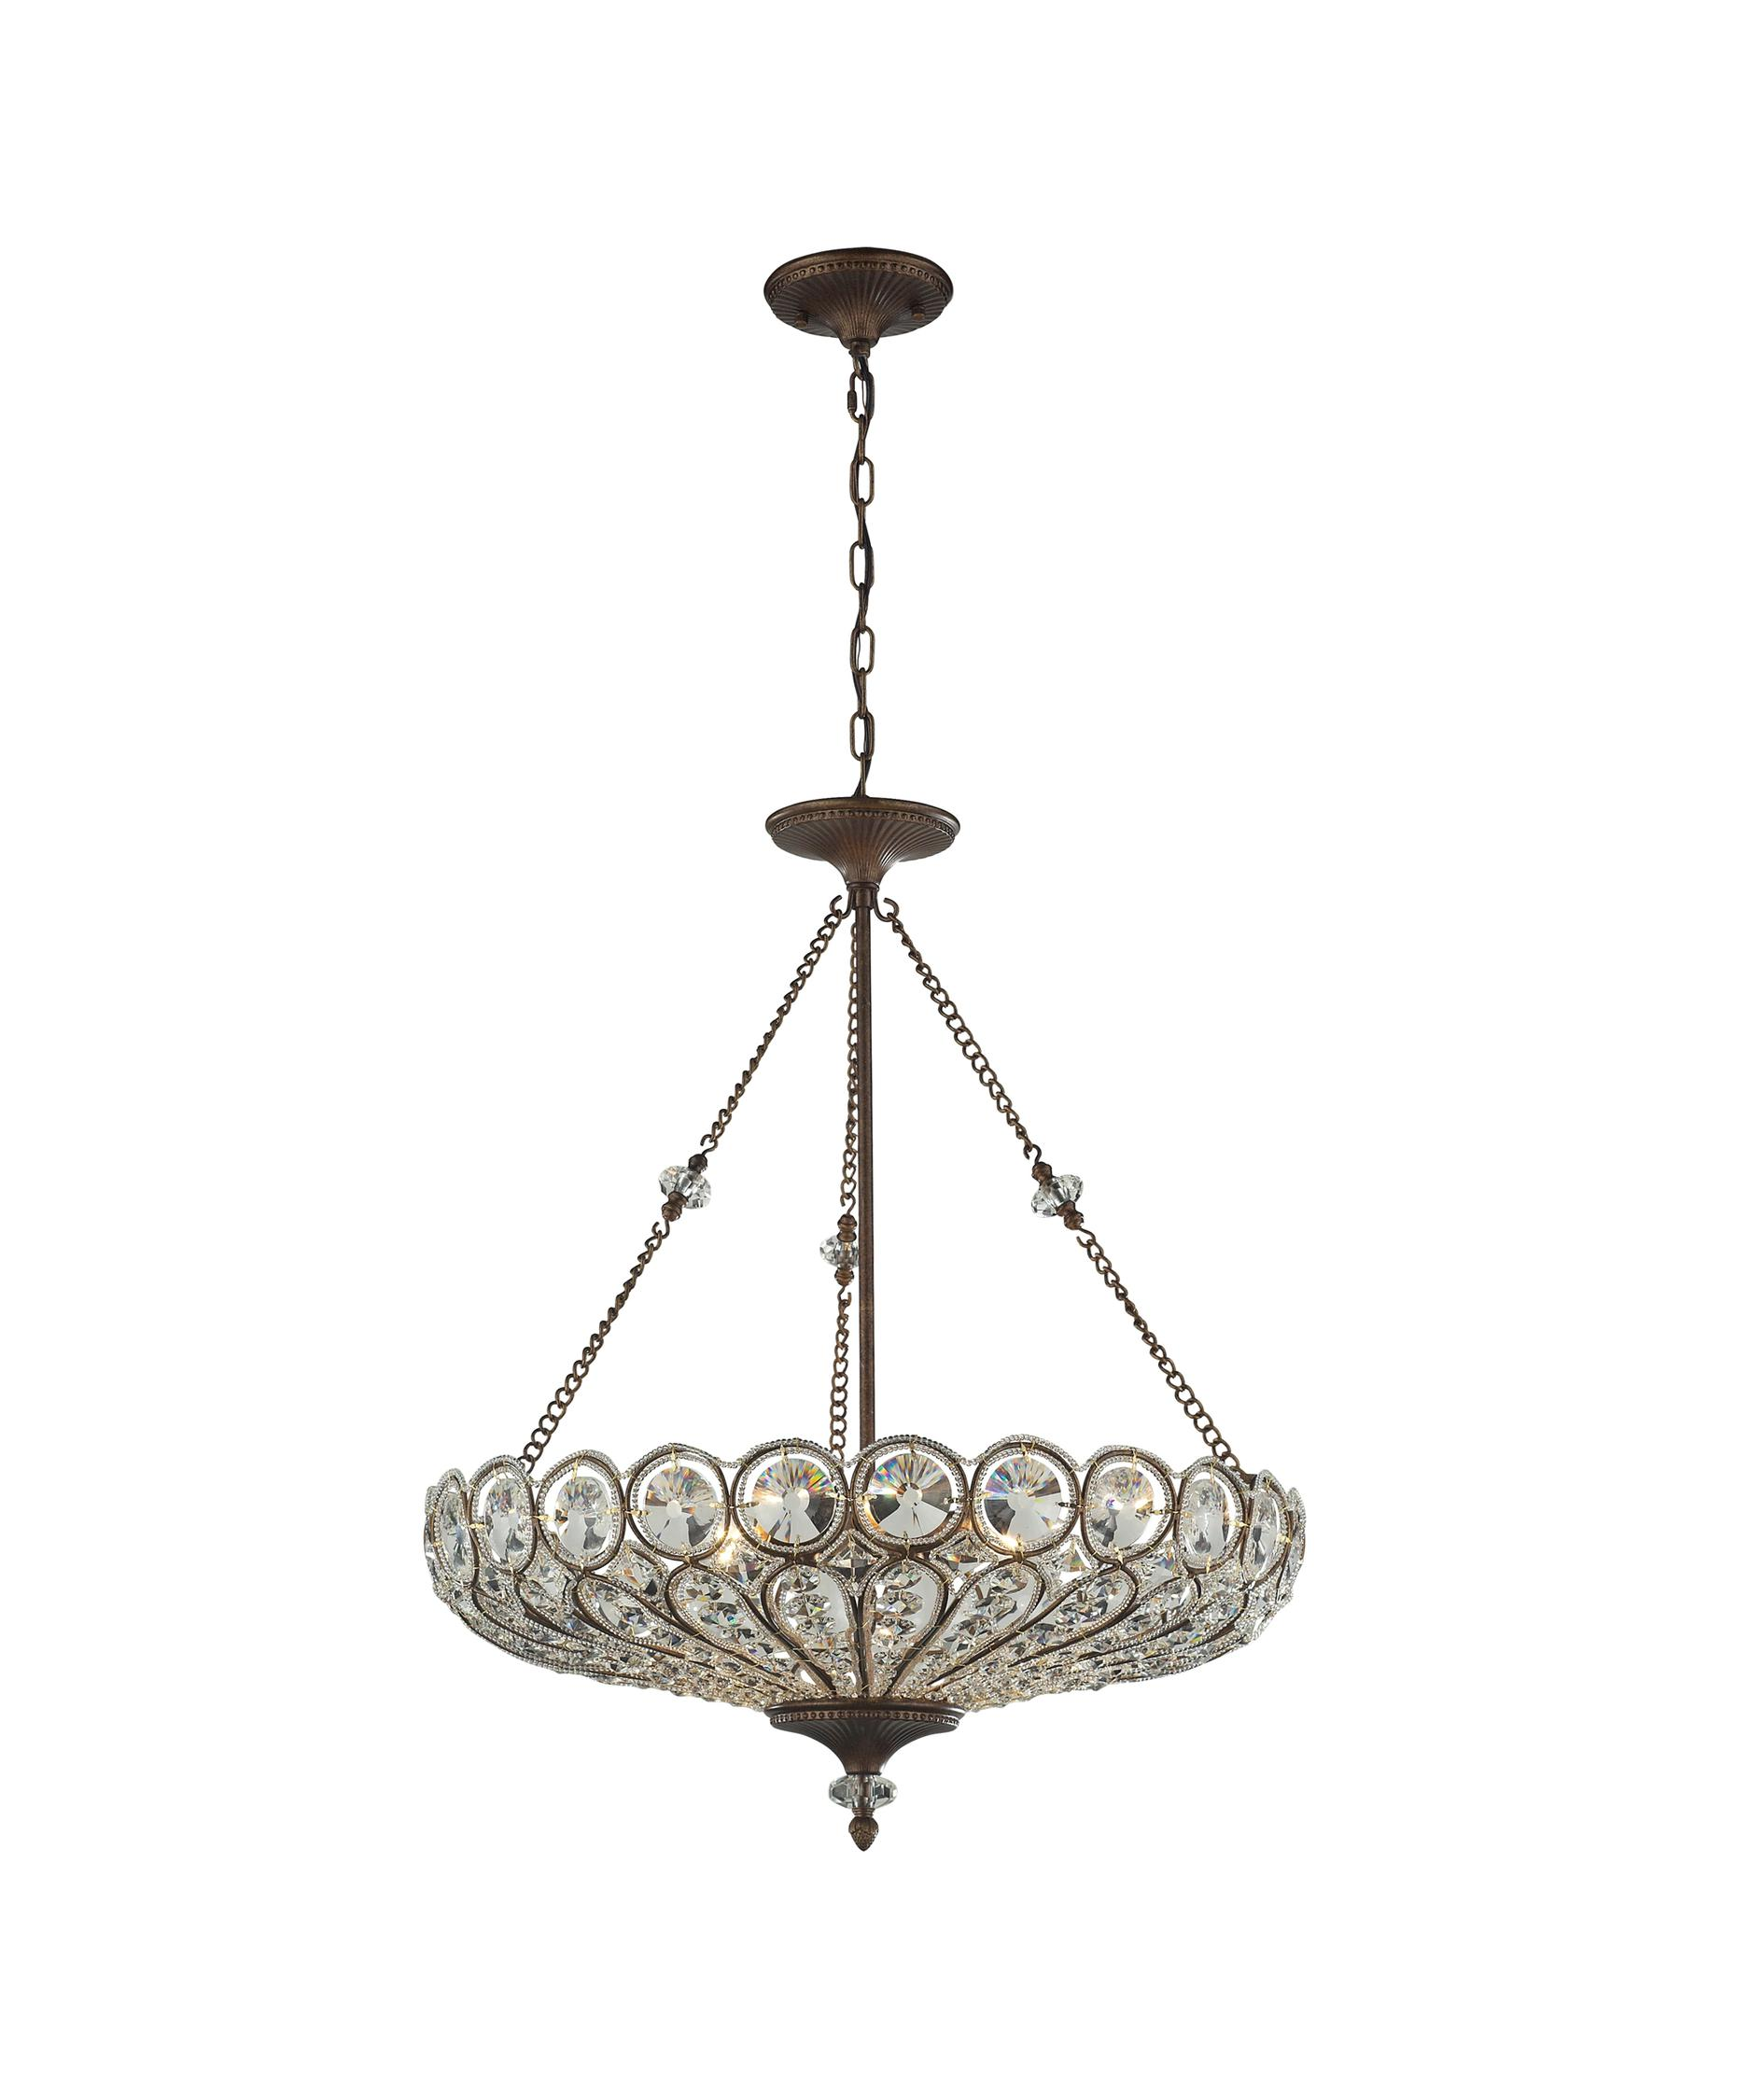 Shown In Mocha Finish And Filigree And Faceted Crystal Glass